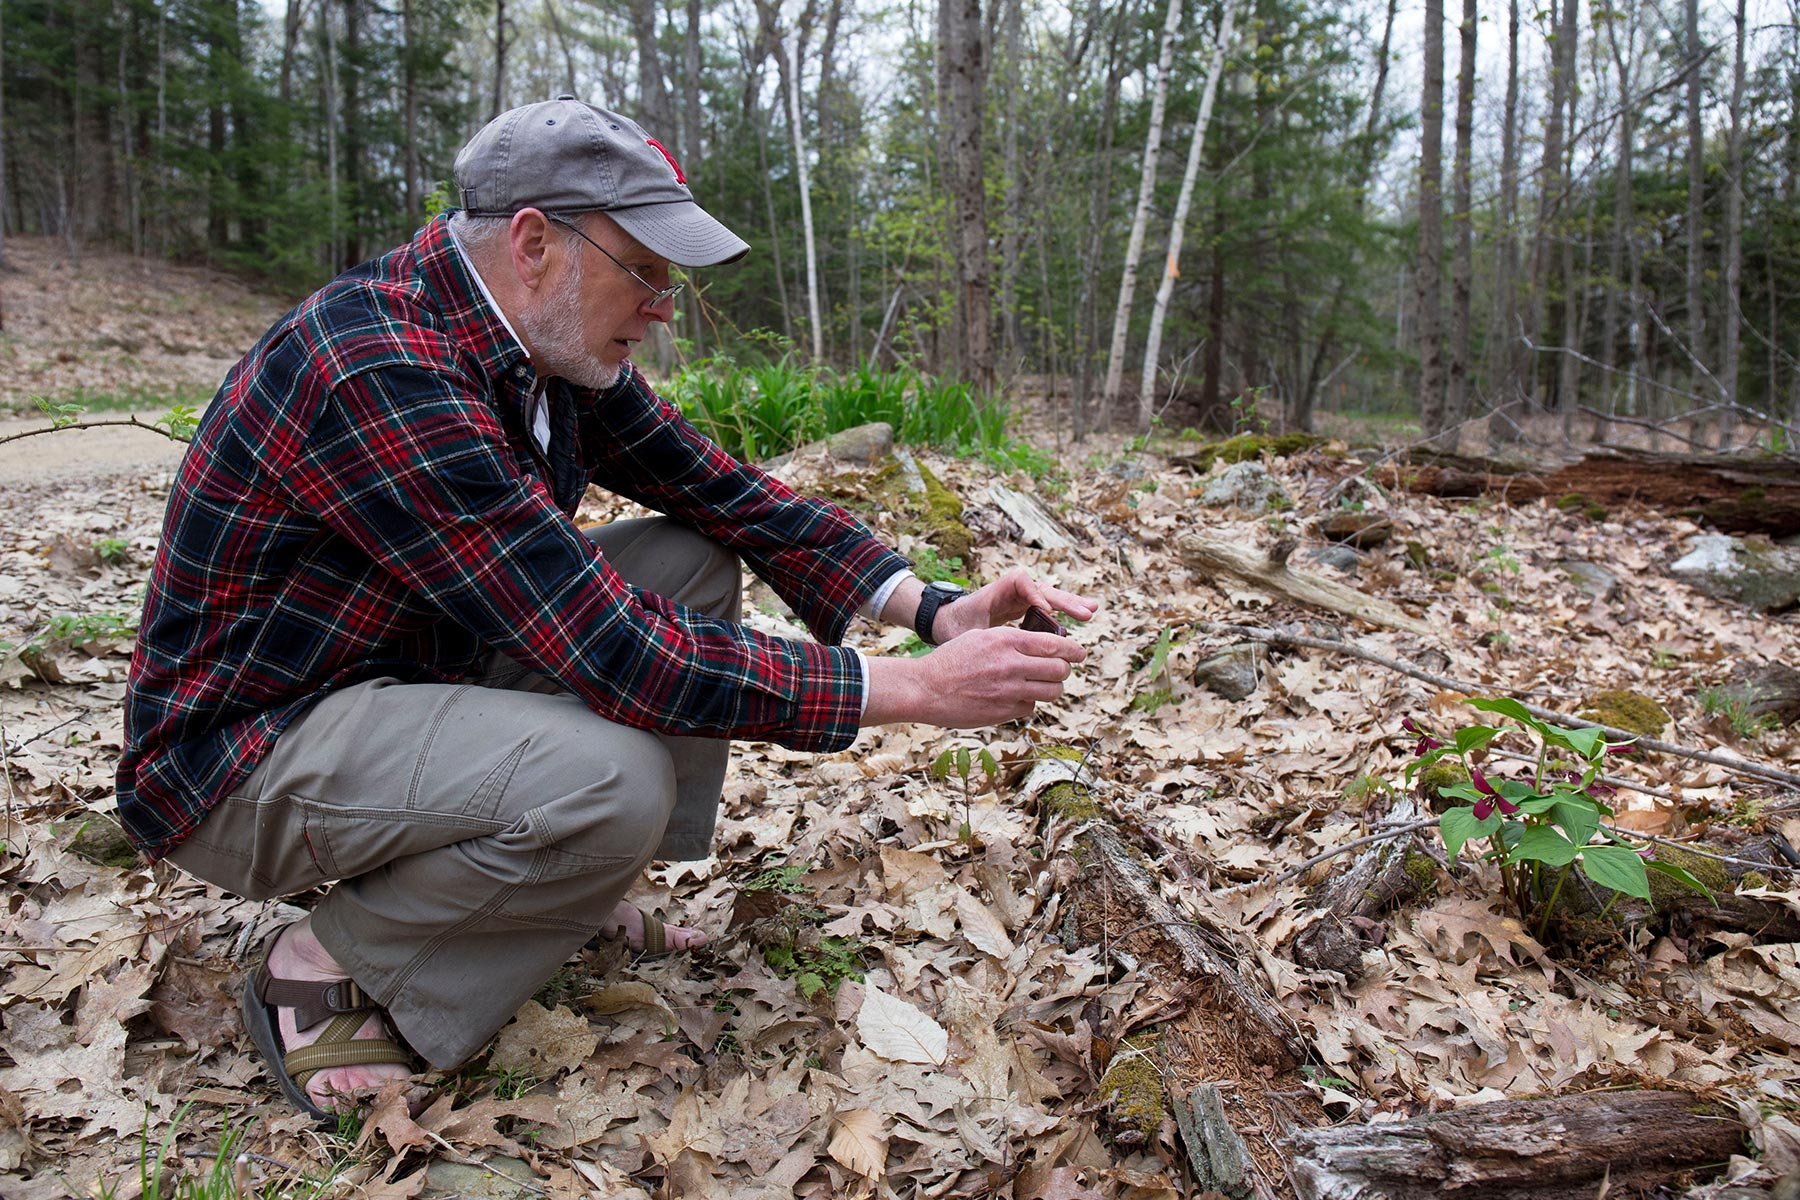 Stephen Blackmer pauses to photograph red trillium peeking through the underbrush.